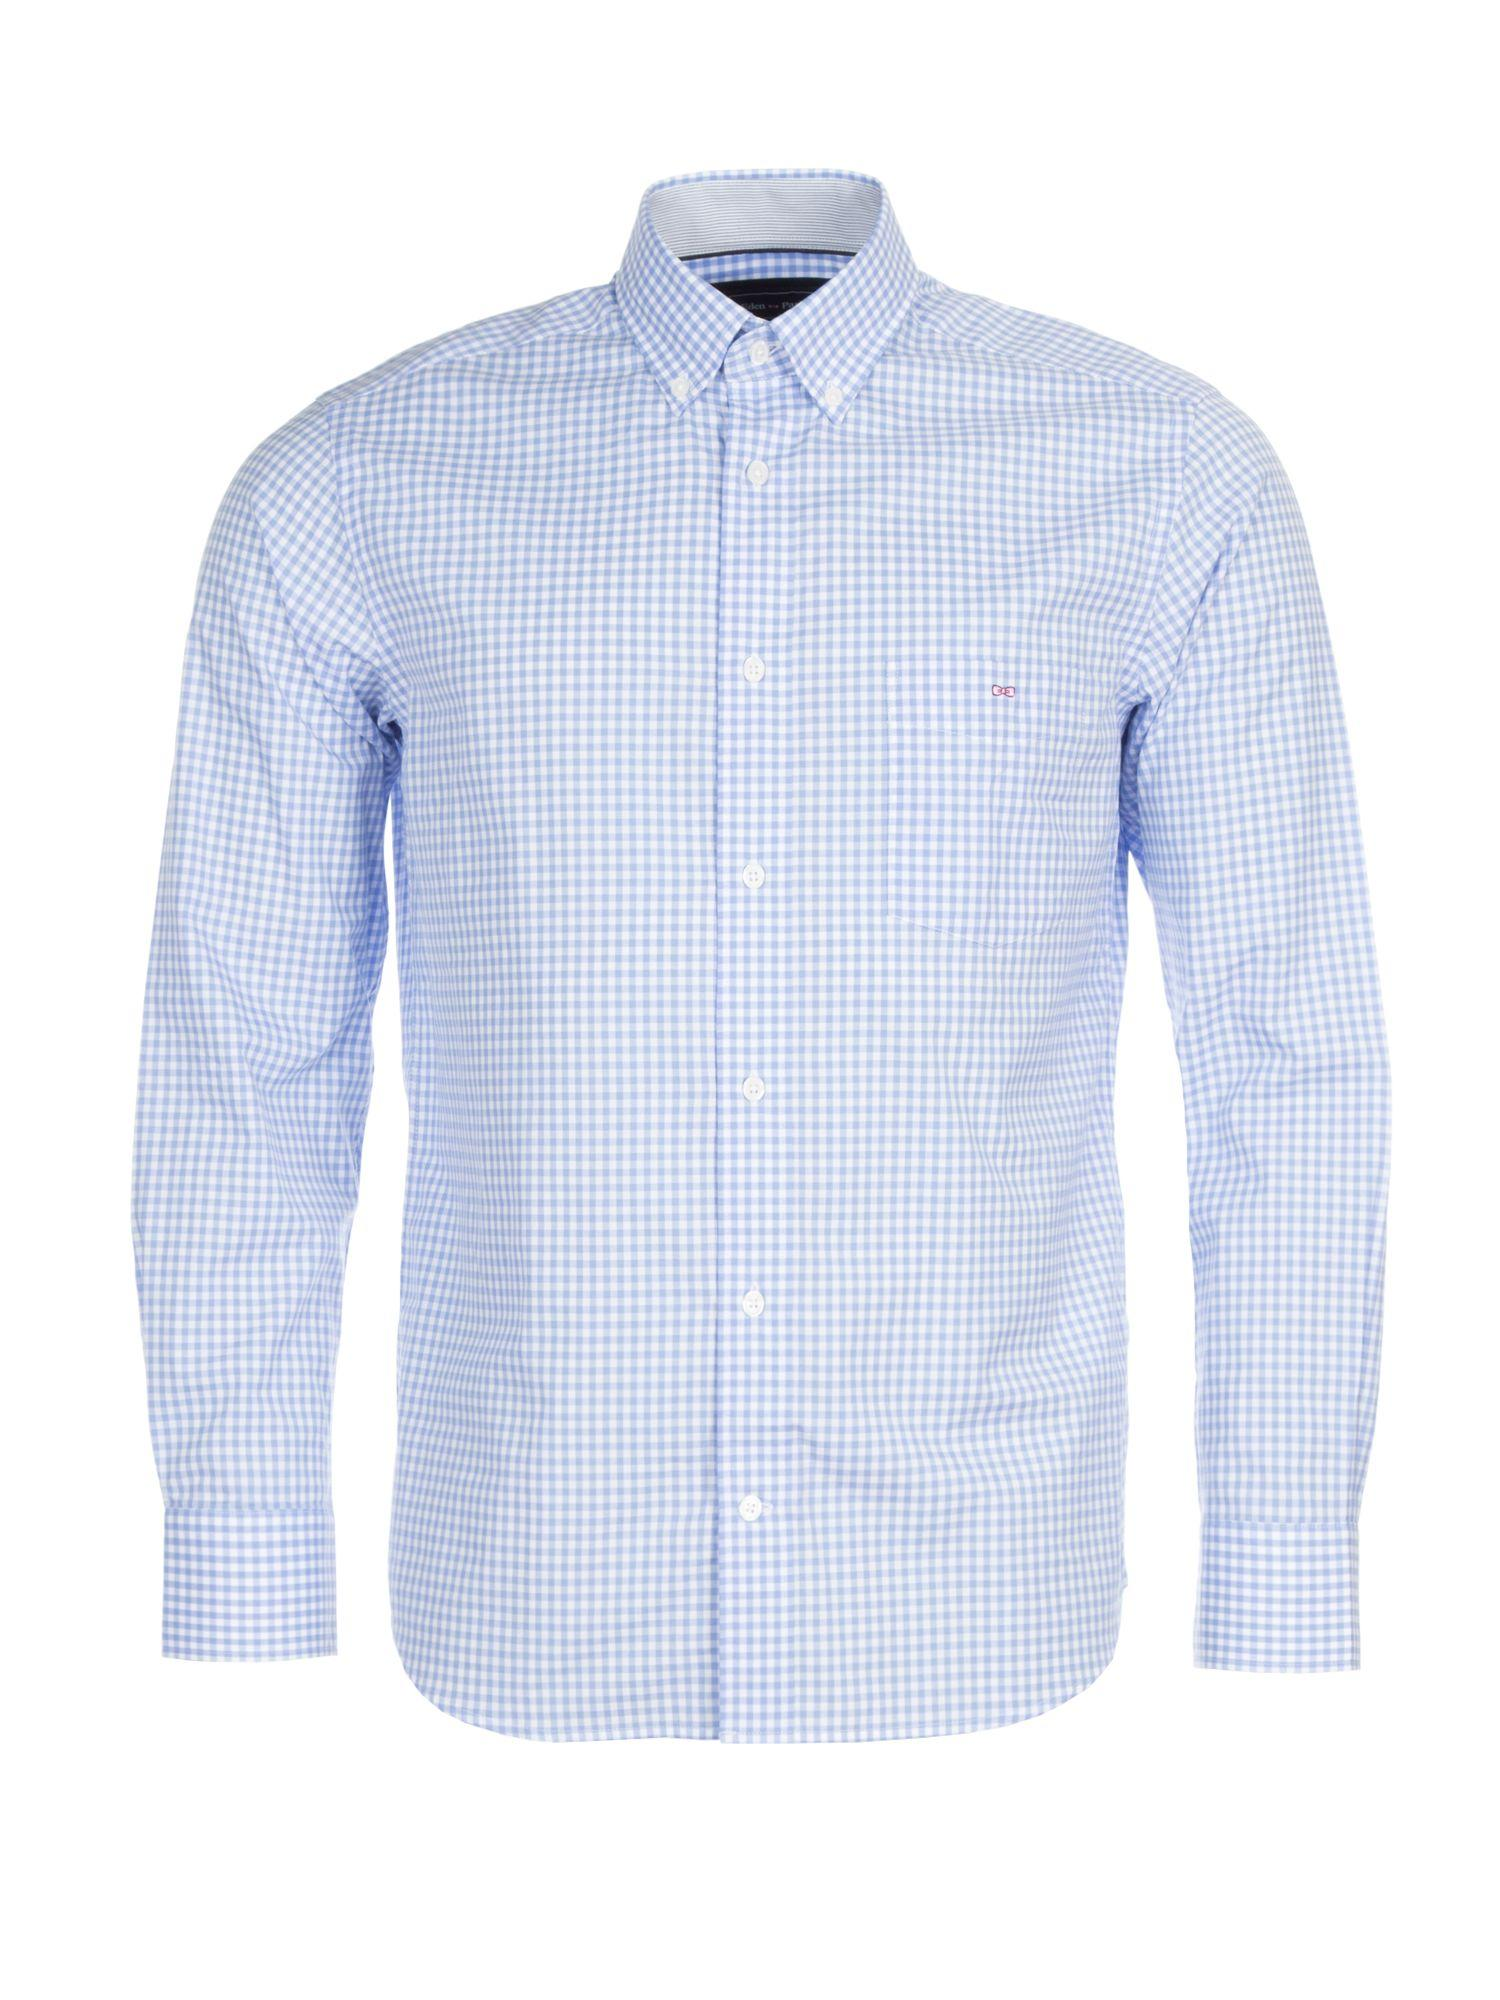 Eden park gingham cotton shirt in blue for men lyst for Mens blue gingham shirt